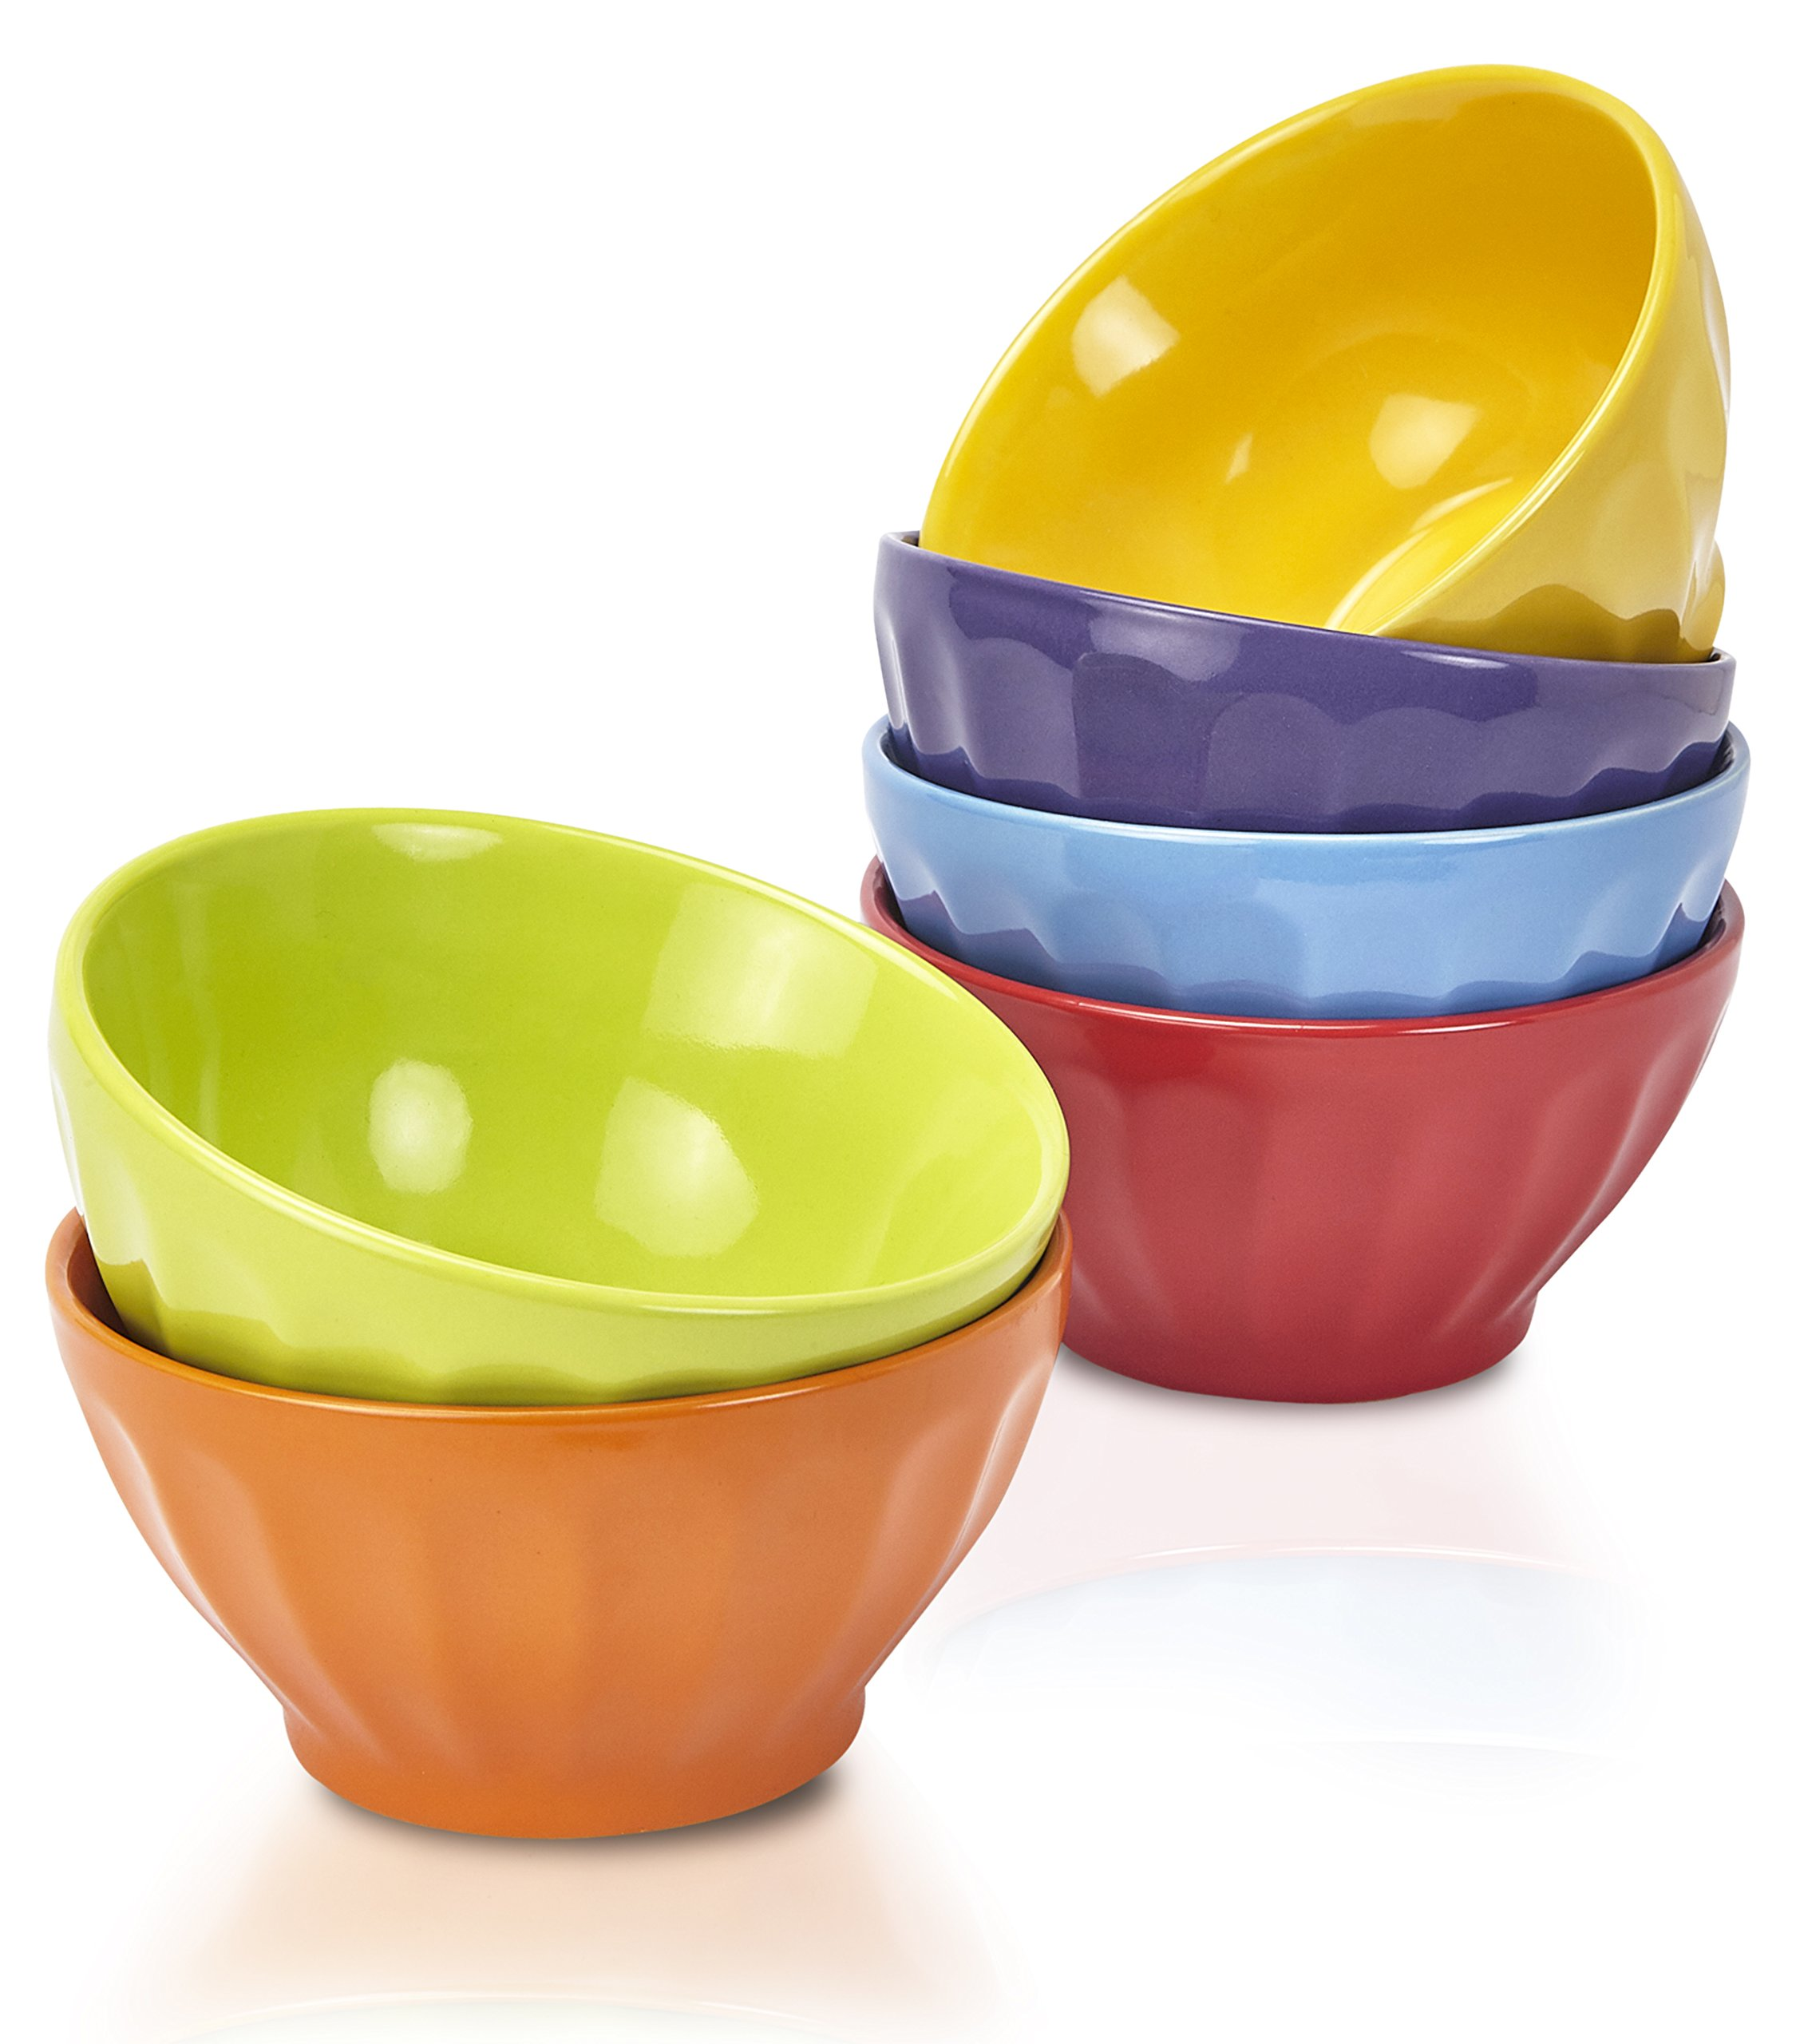 Klikel Fluted Soup Bowls 6pc Set – Bright Solid Colors - Dishwasher And Microwave Safe Porcelain Dinnerware – 20oz, 5.5 Round – Deep Stackable Cereal Bowls